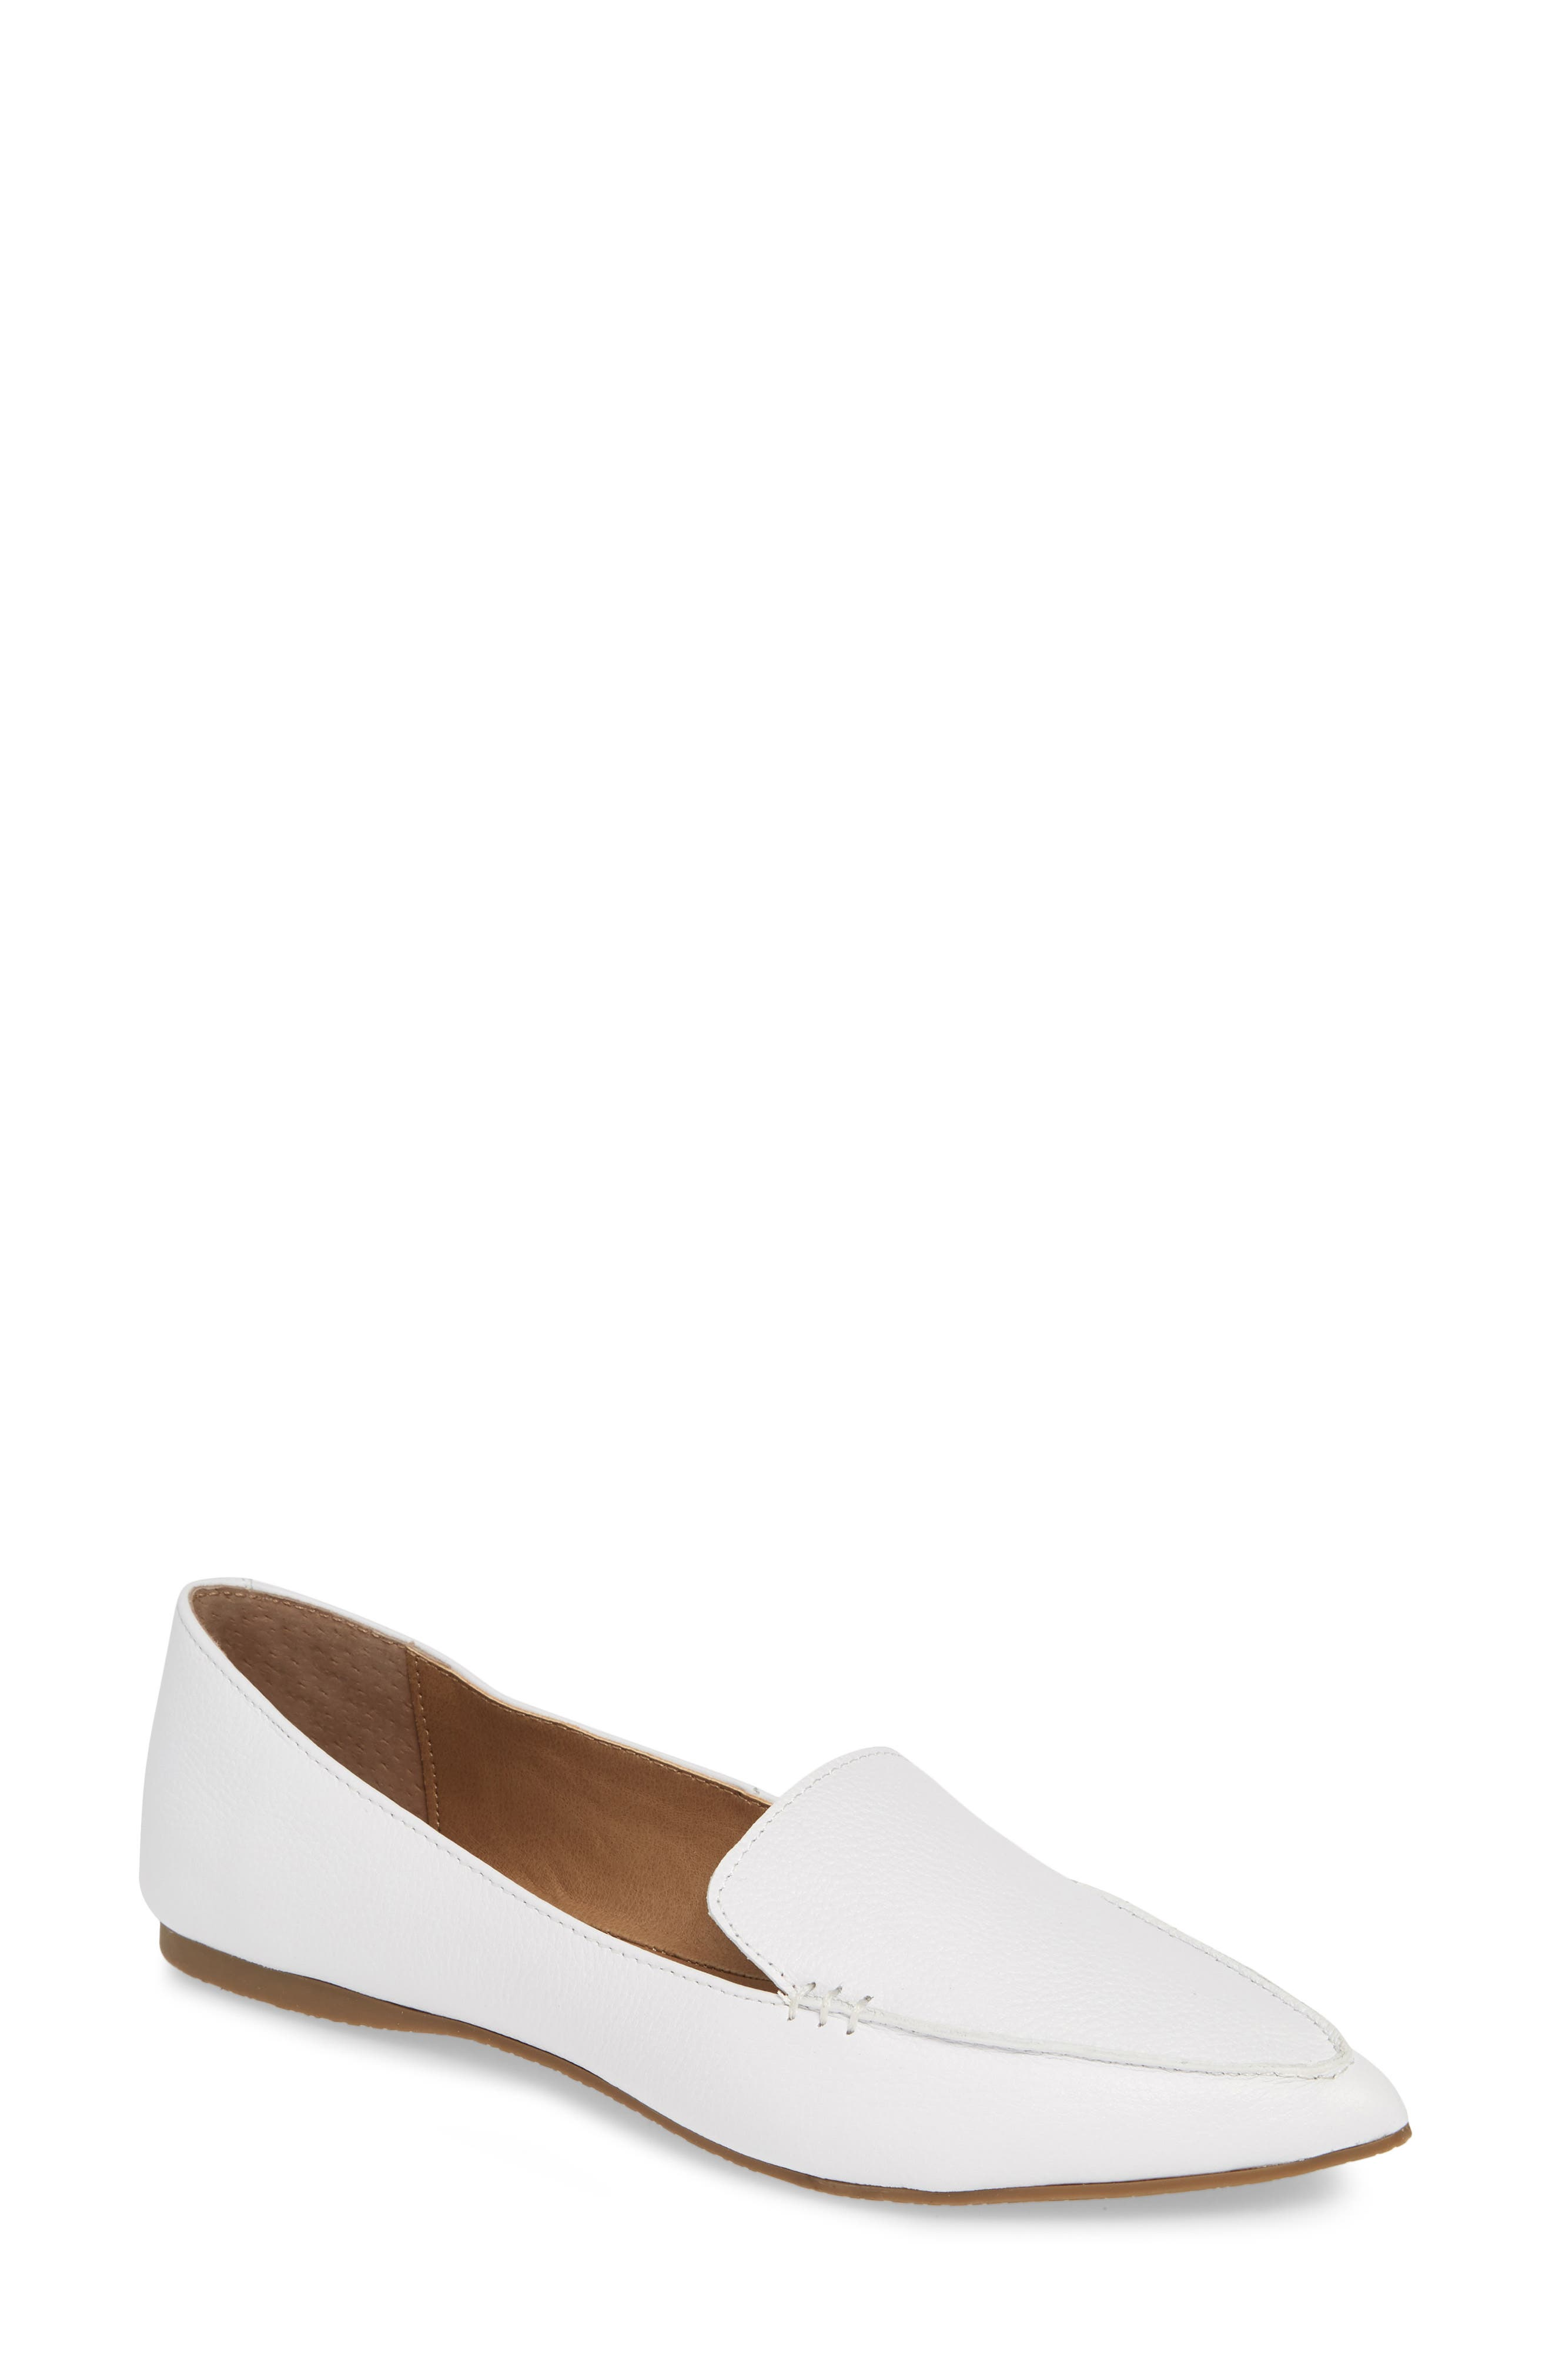 STEVE MADDEN,                             Feather Loafer Flat,                             Main thumbnail 1, color,                             WHITE LEATHER